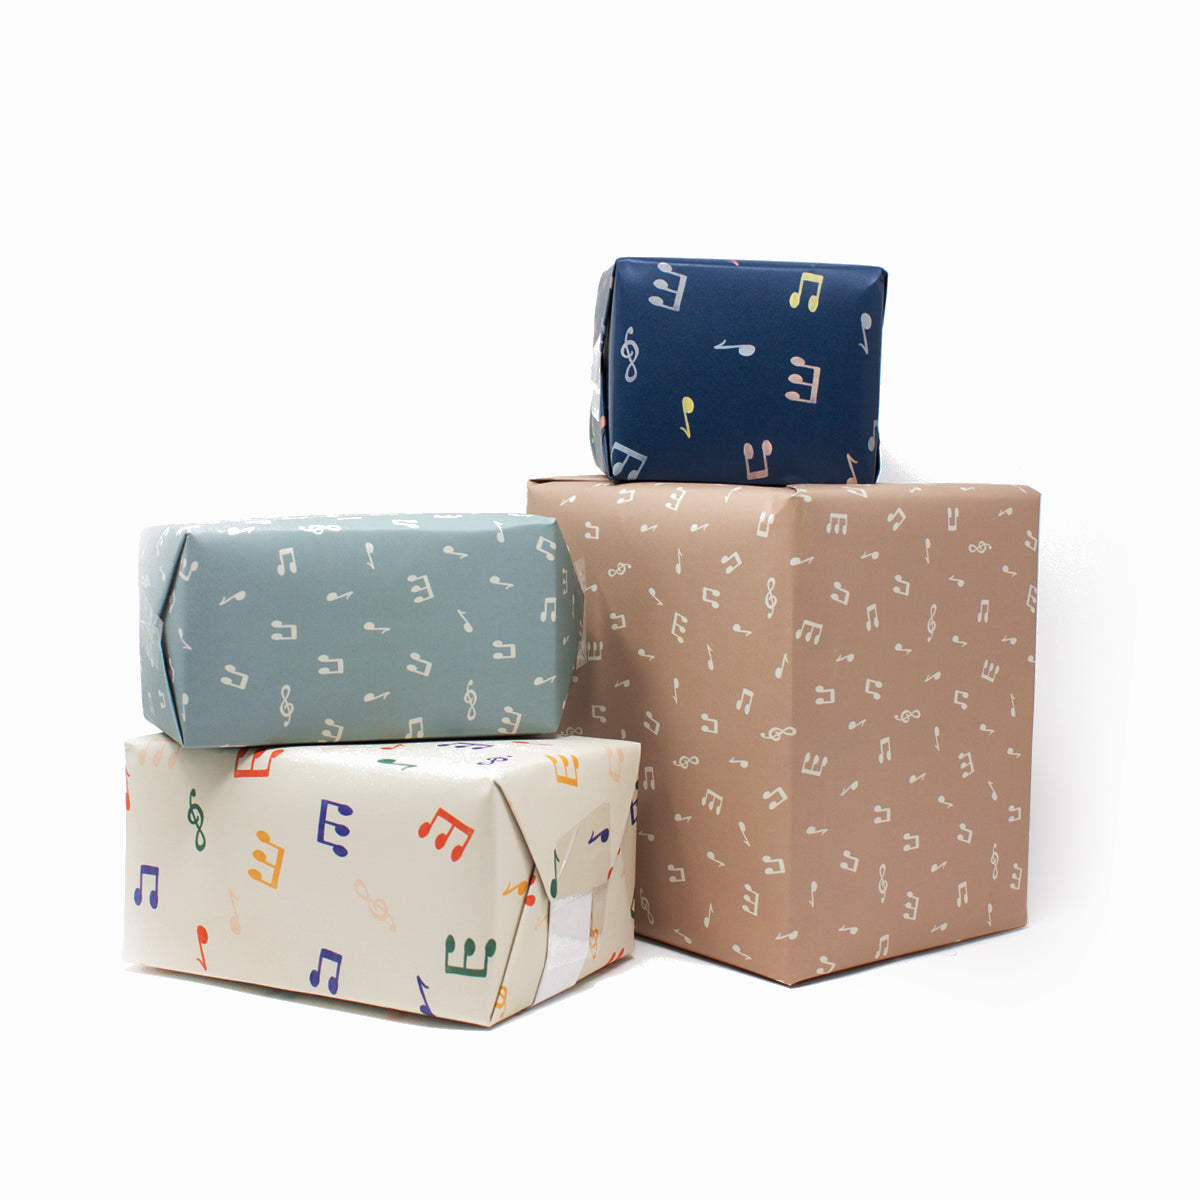 3 Sheets of Gift Wraps - Mint Notes